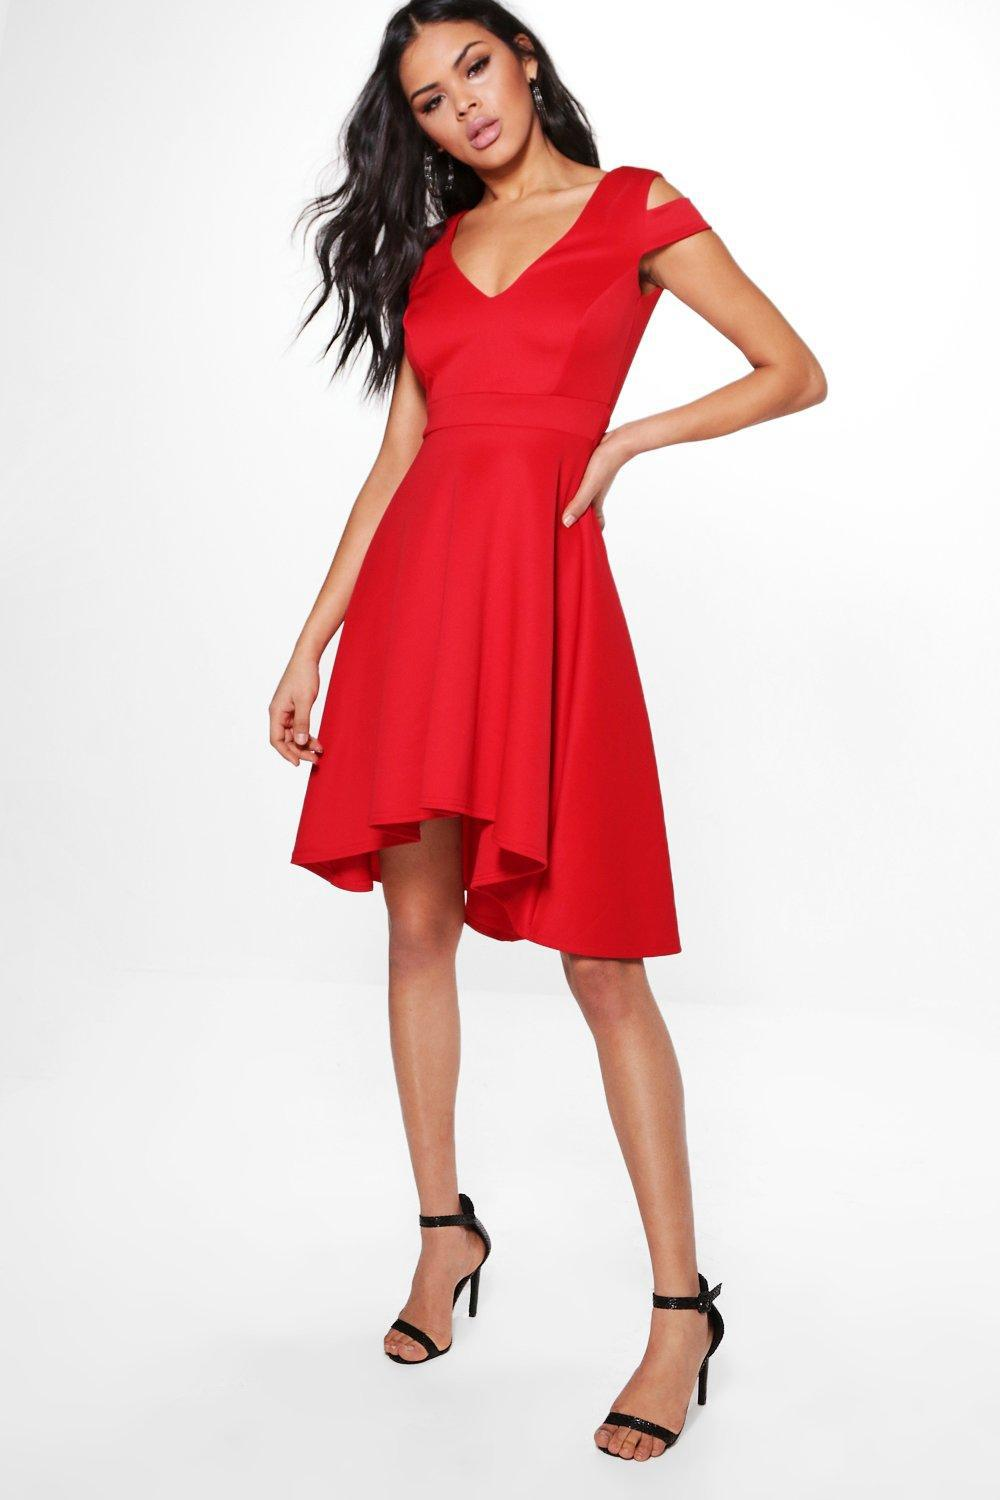 5015831ff60e Gallery. Previously sold at: Boohoo · Women's Black Cocktail Dresses ...